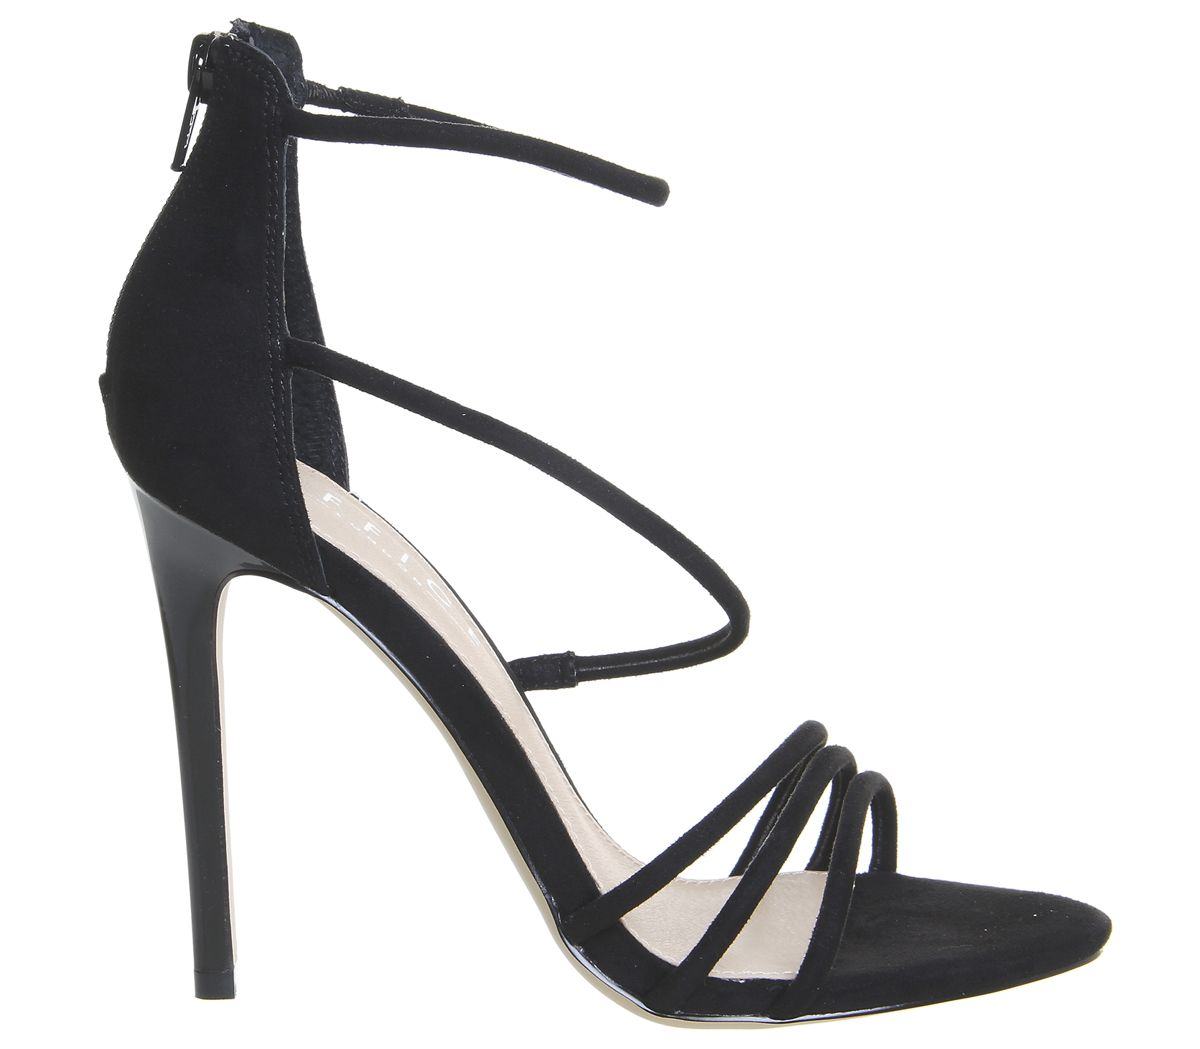 d82ea722c Womens-Office-Harness-Strappy-Sandals-Black-Heels thumbnail 6